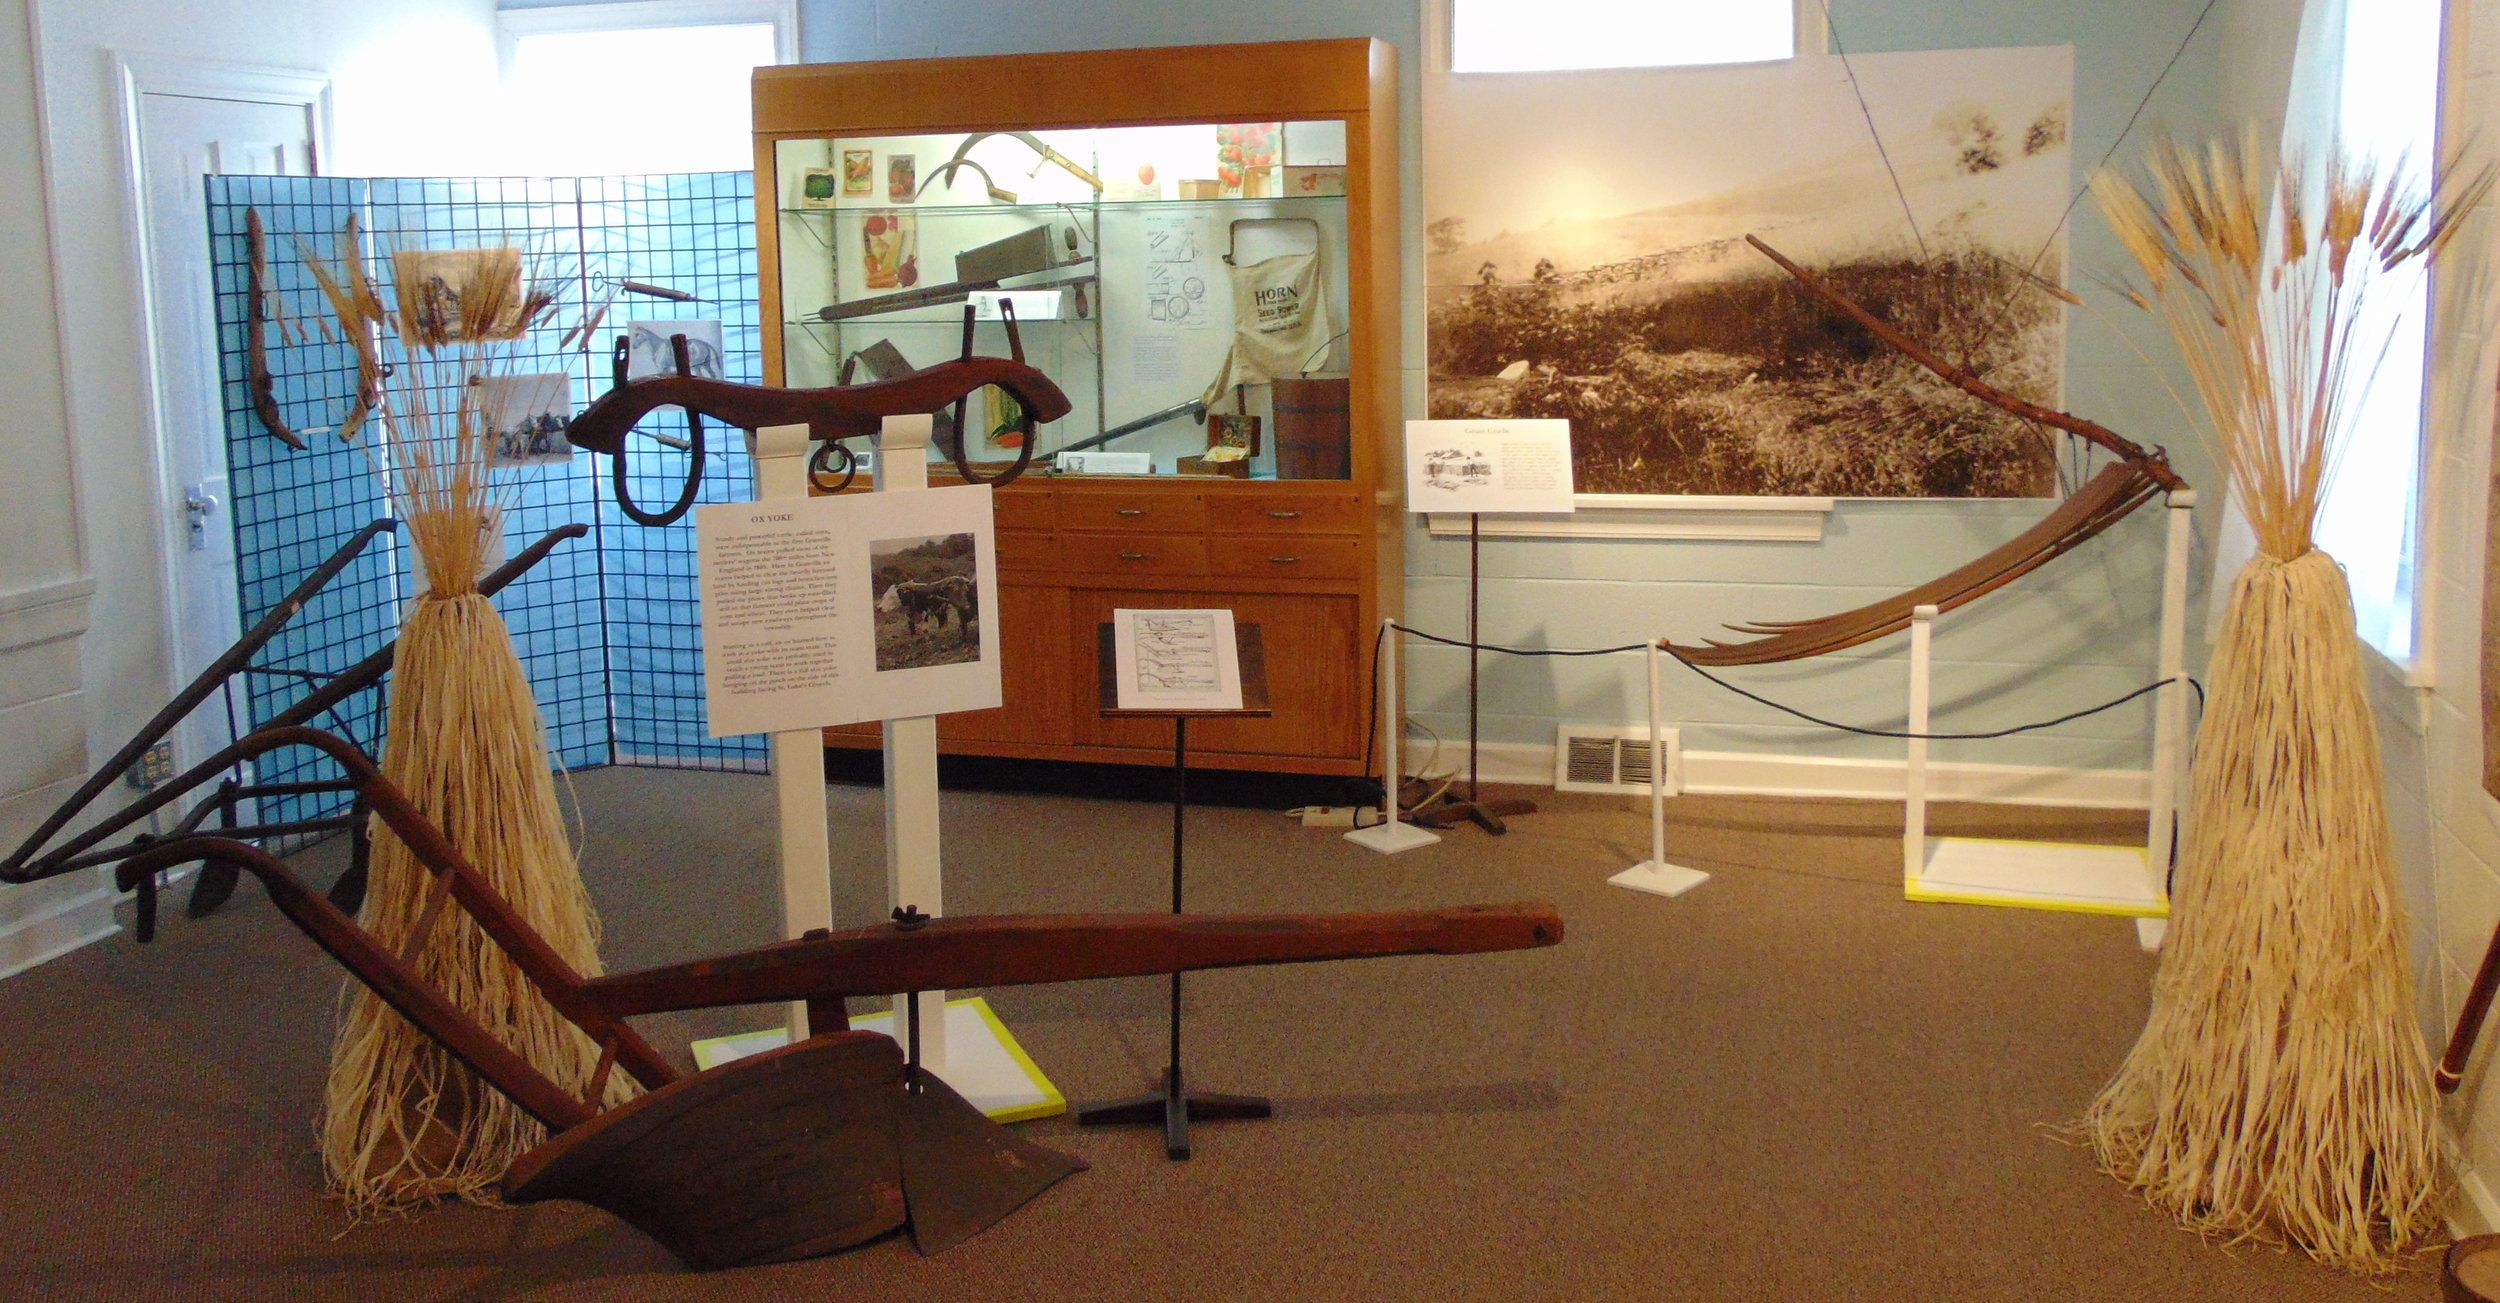 Our exhibit on farming features a range of tools and implements,including a plow, yoke, and scythe.